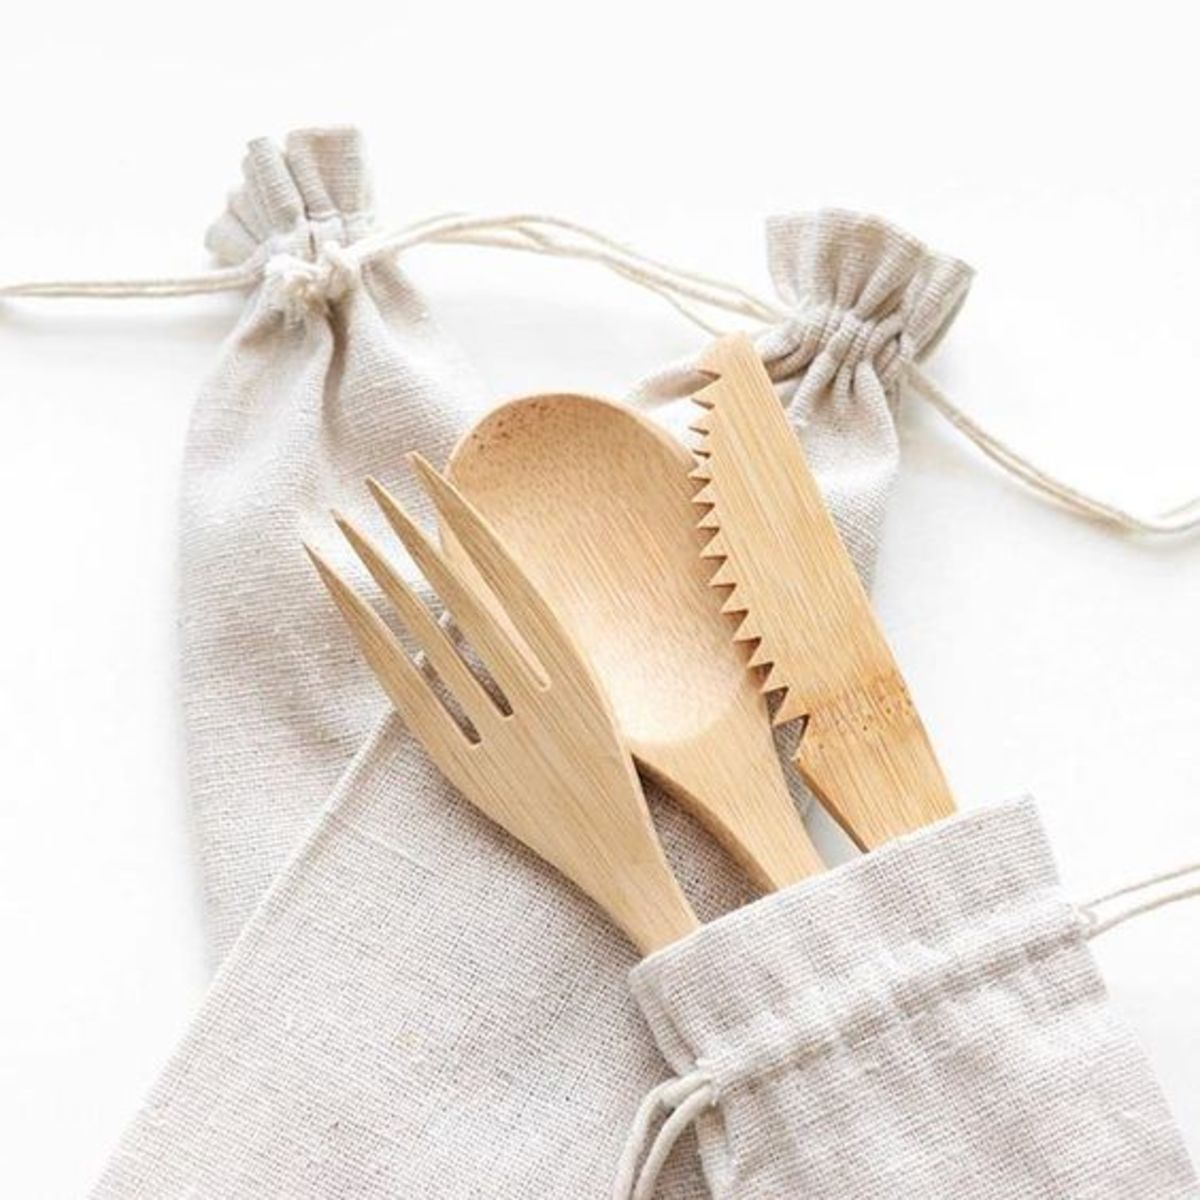 Many people already carry reusable flatware and straws. Why not have them bring their own plates as well?